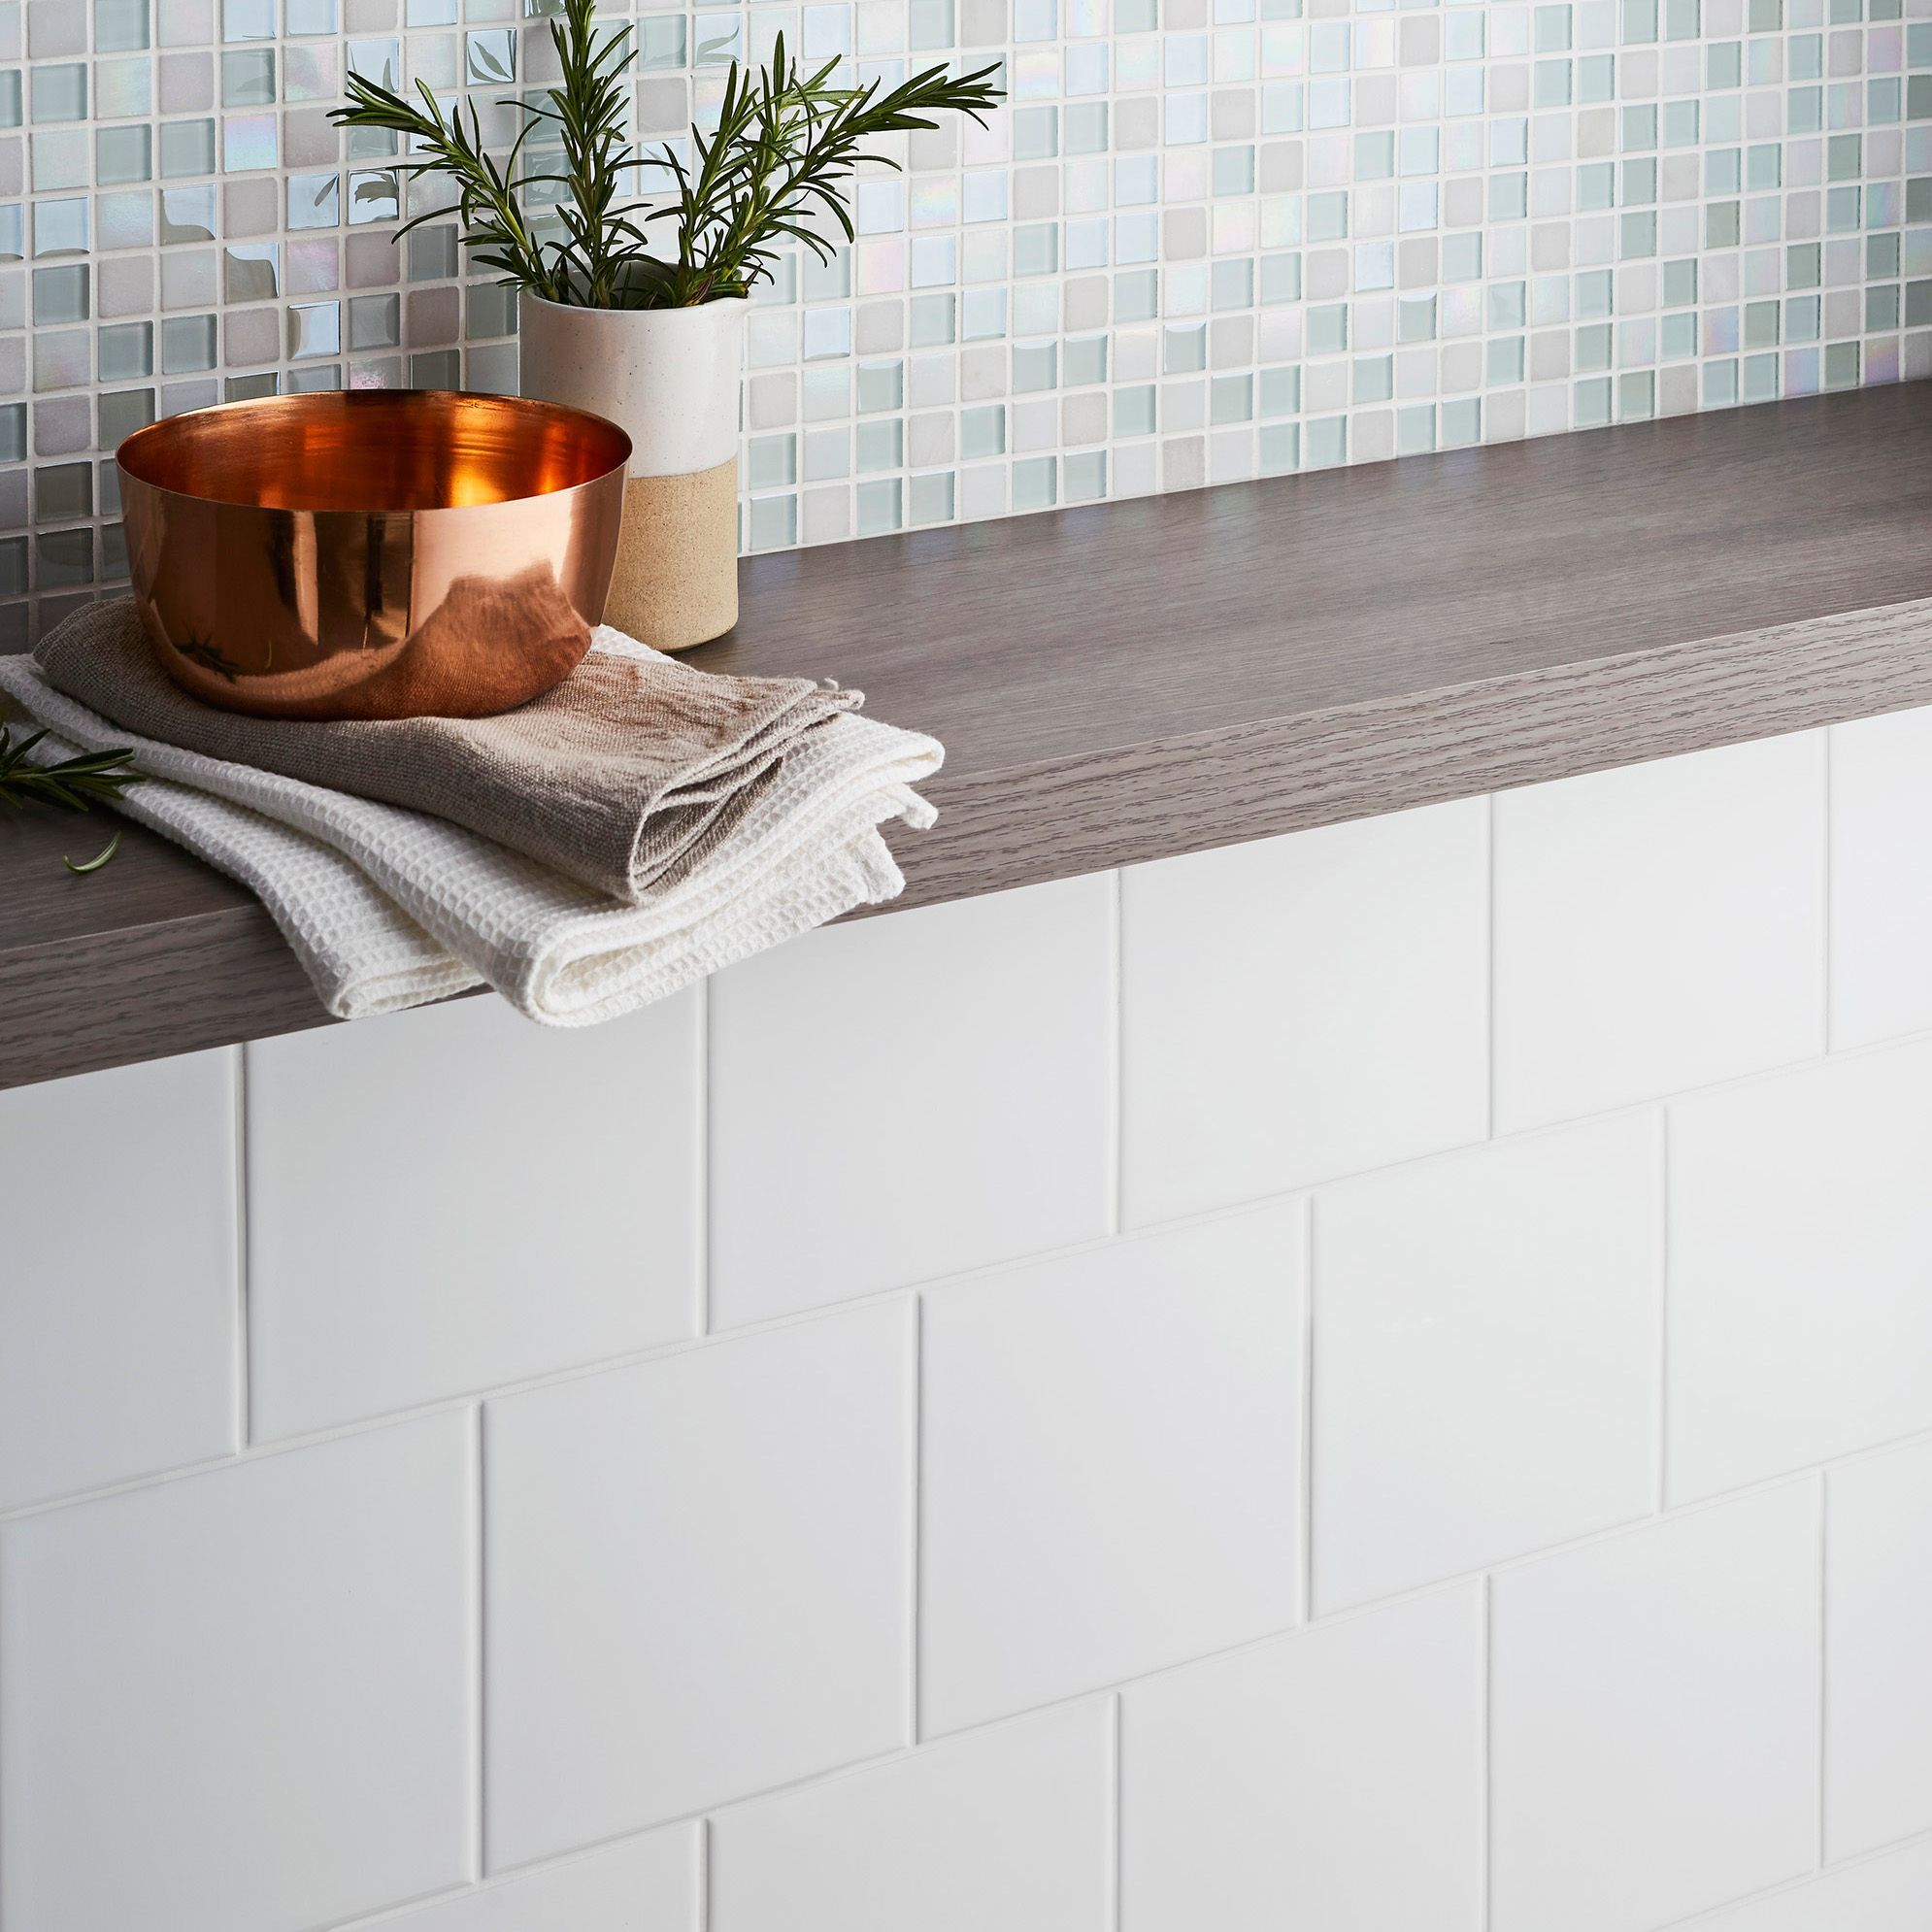 Leccia White Gloss Ceramic Wall Tile Pack Of 44 L 150mm W 150mm B Q For All Your Home And Garden Su Ceramic Wall Tiles Wall Tiles Small Bathroom Makeover